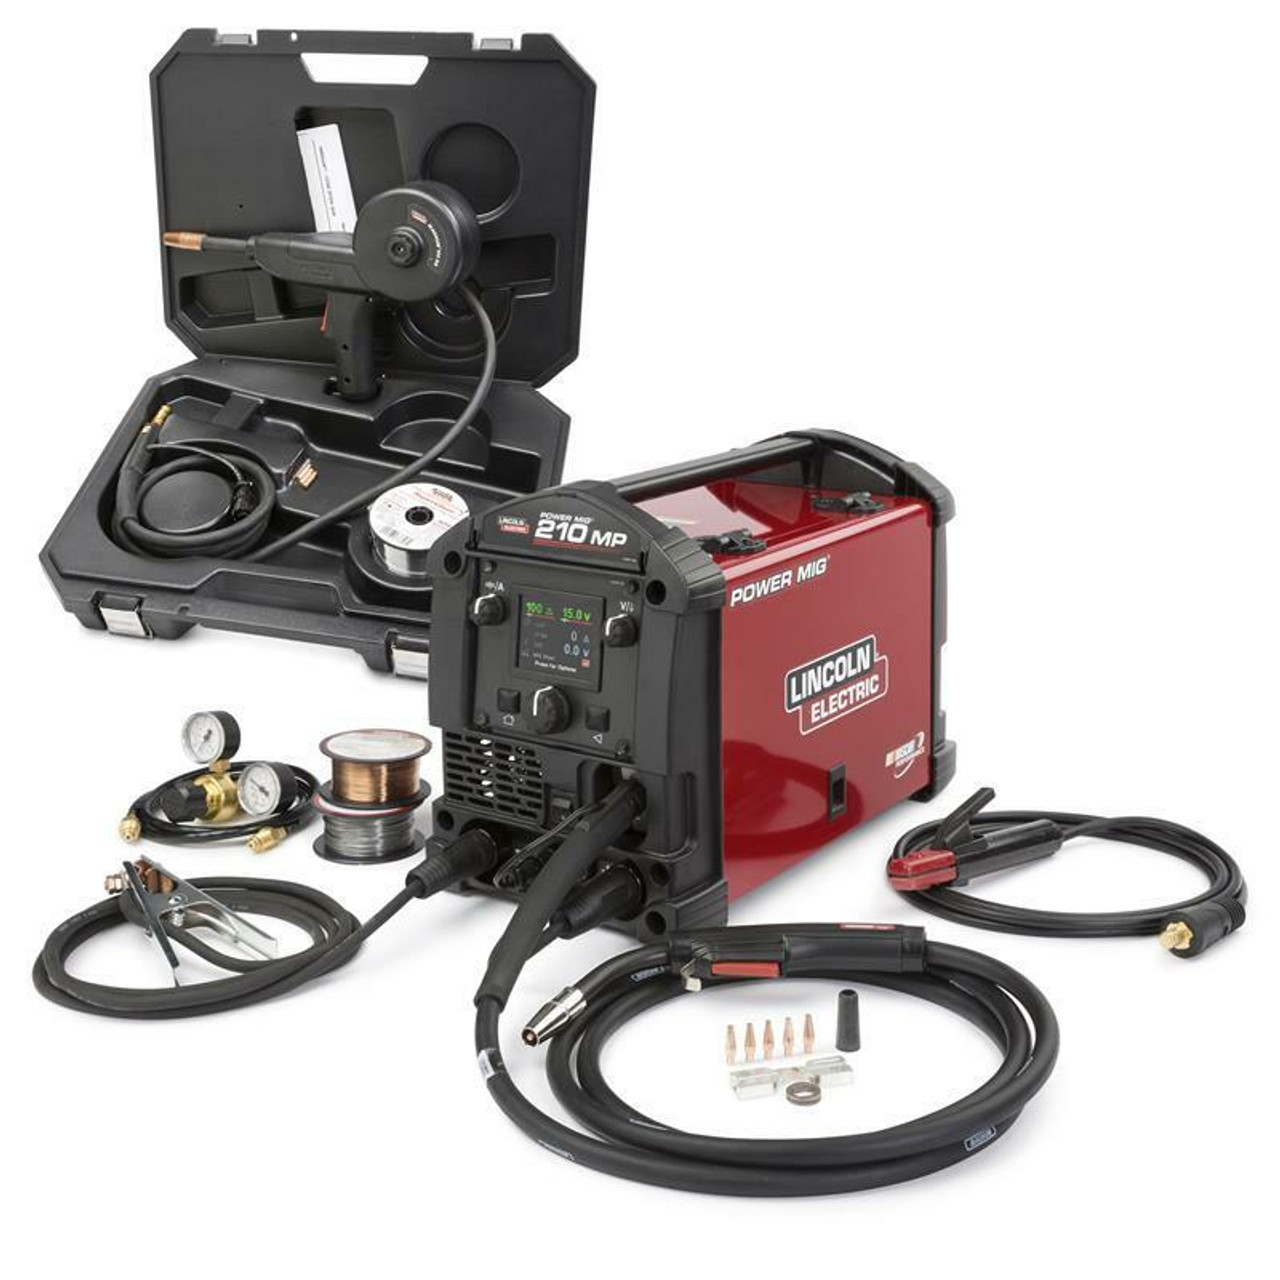 Lincoln Power MIG 210 MP Multi-Process Welder Aluminum One-Pak K4195-1